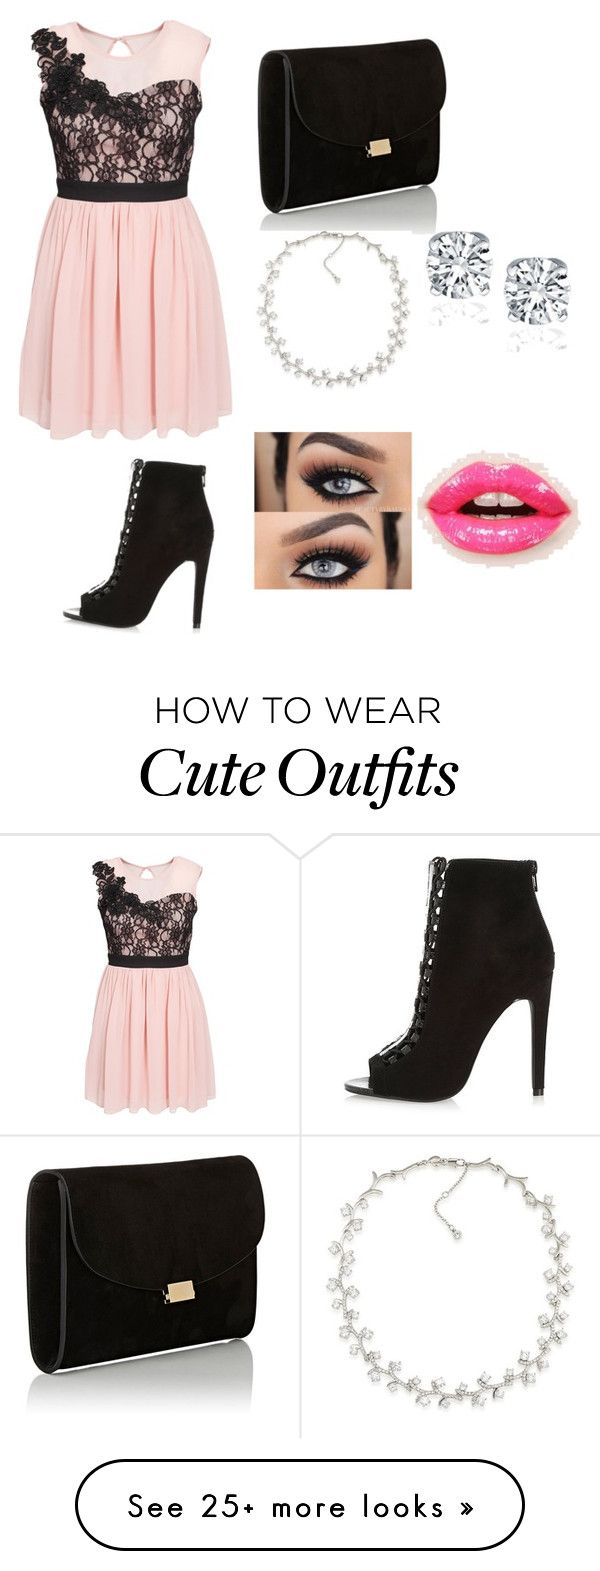 """""""Cute Party Outfit"""" by lsantana13 on Polyvore featuring Elise Ryan, River Island, Mansur Gavriel, Carolee and Christian Dior"""